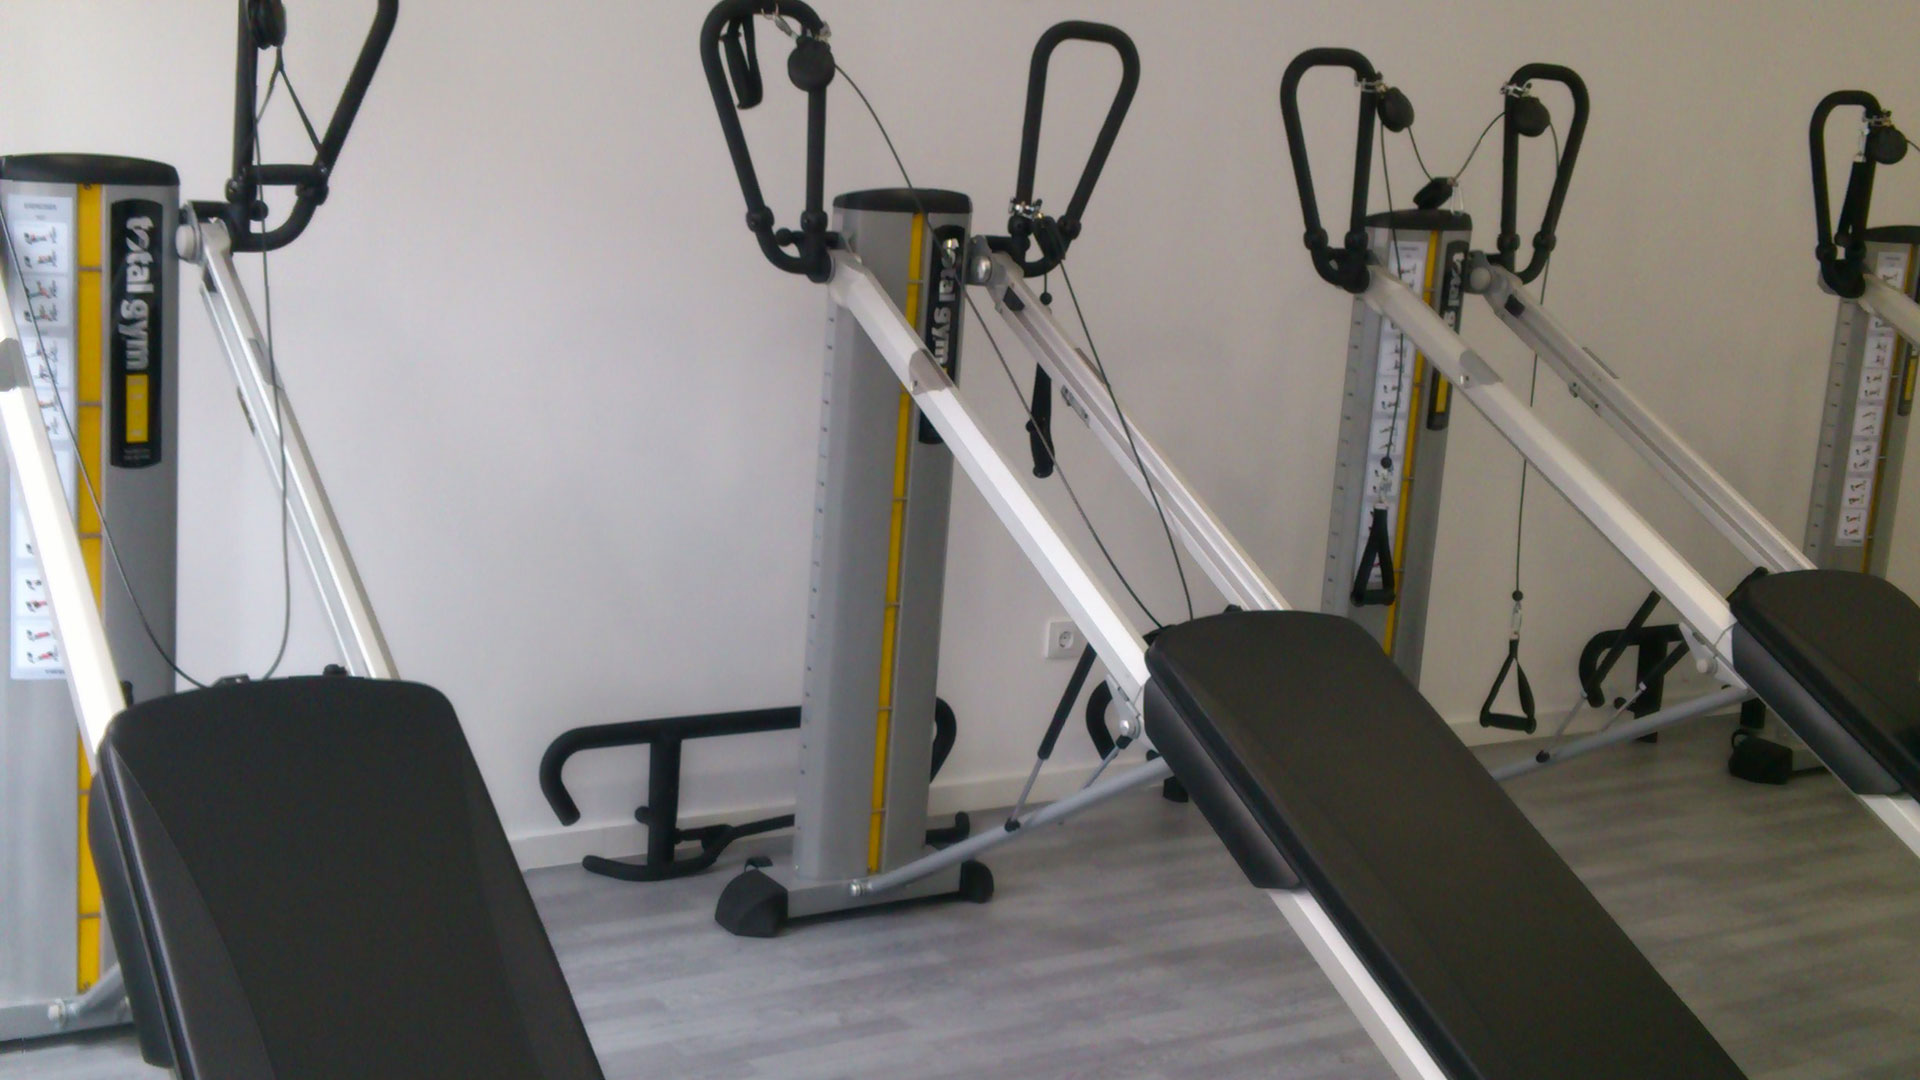 Cardio-training room